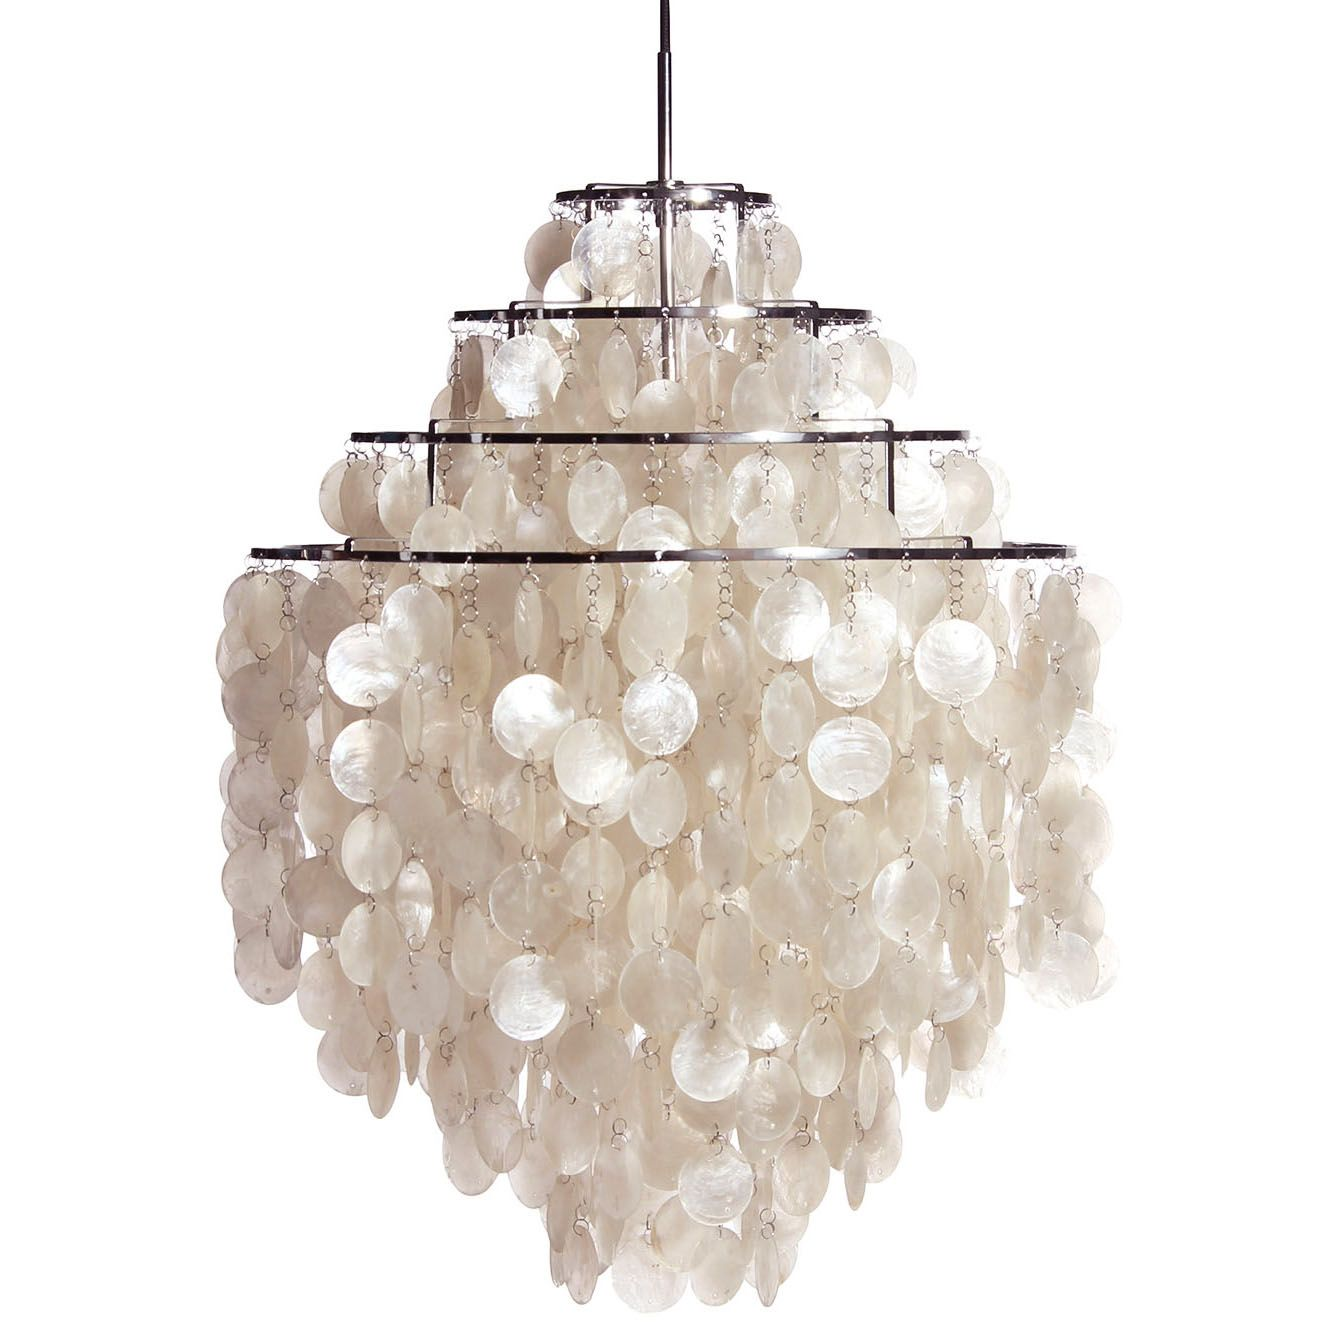 Large white fun 0 dm shell capiz shell chandelier pendant chandelier bella capiz ceiling light ceiling lights particularly antique ceiling light can make an excellent difference to the atmosp mozeypictures Image collections